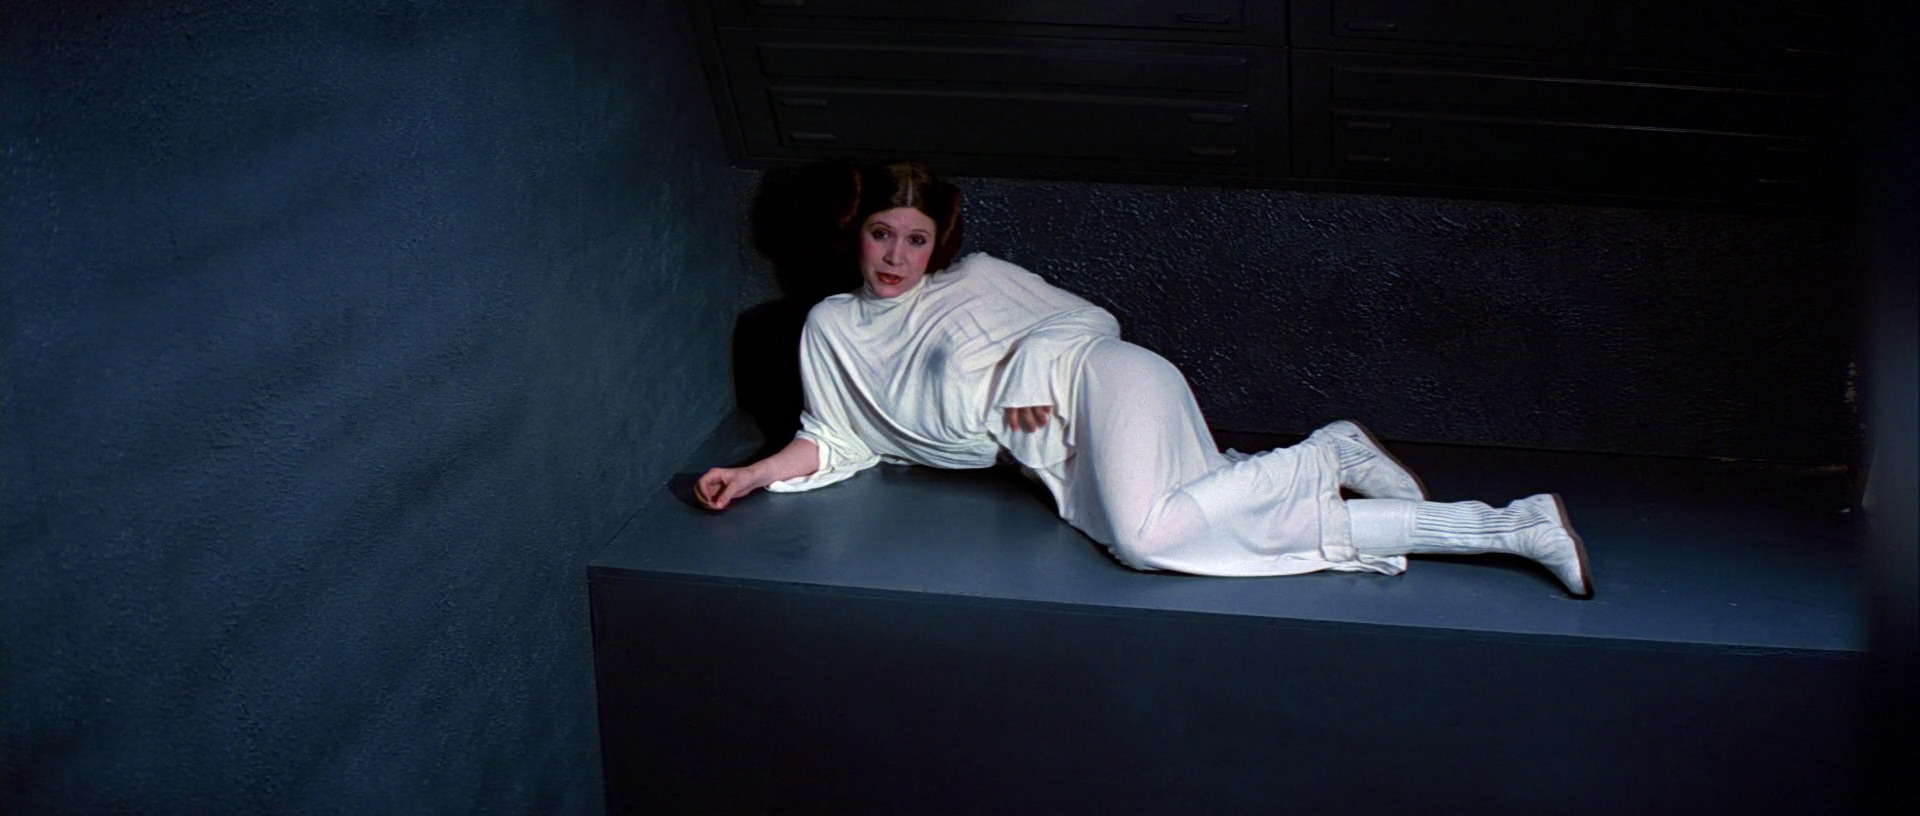 Image result for princess leia in the jail cell